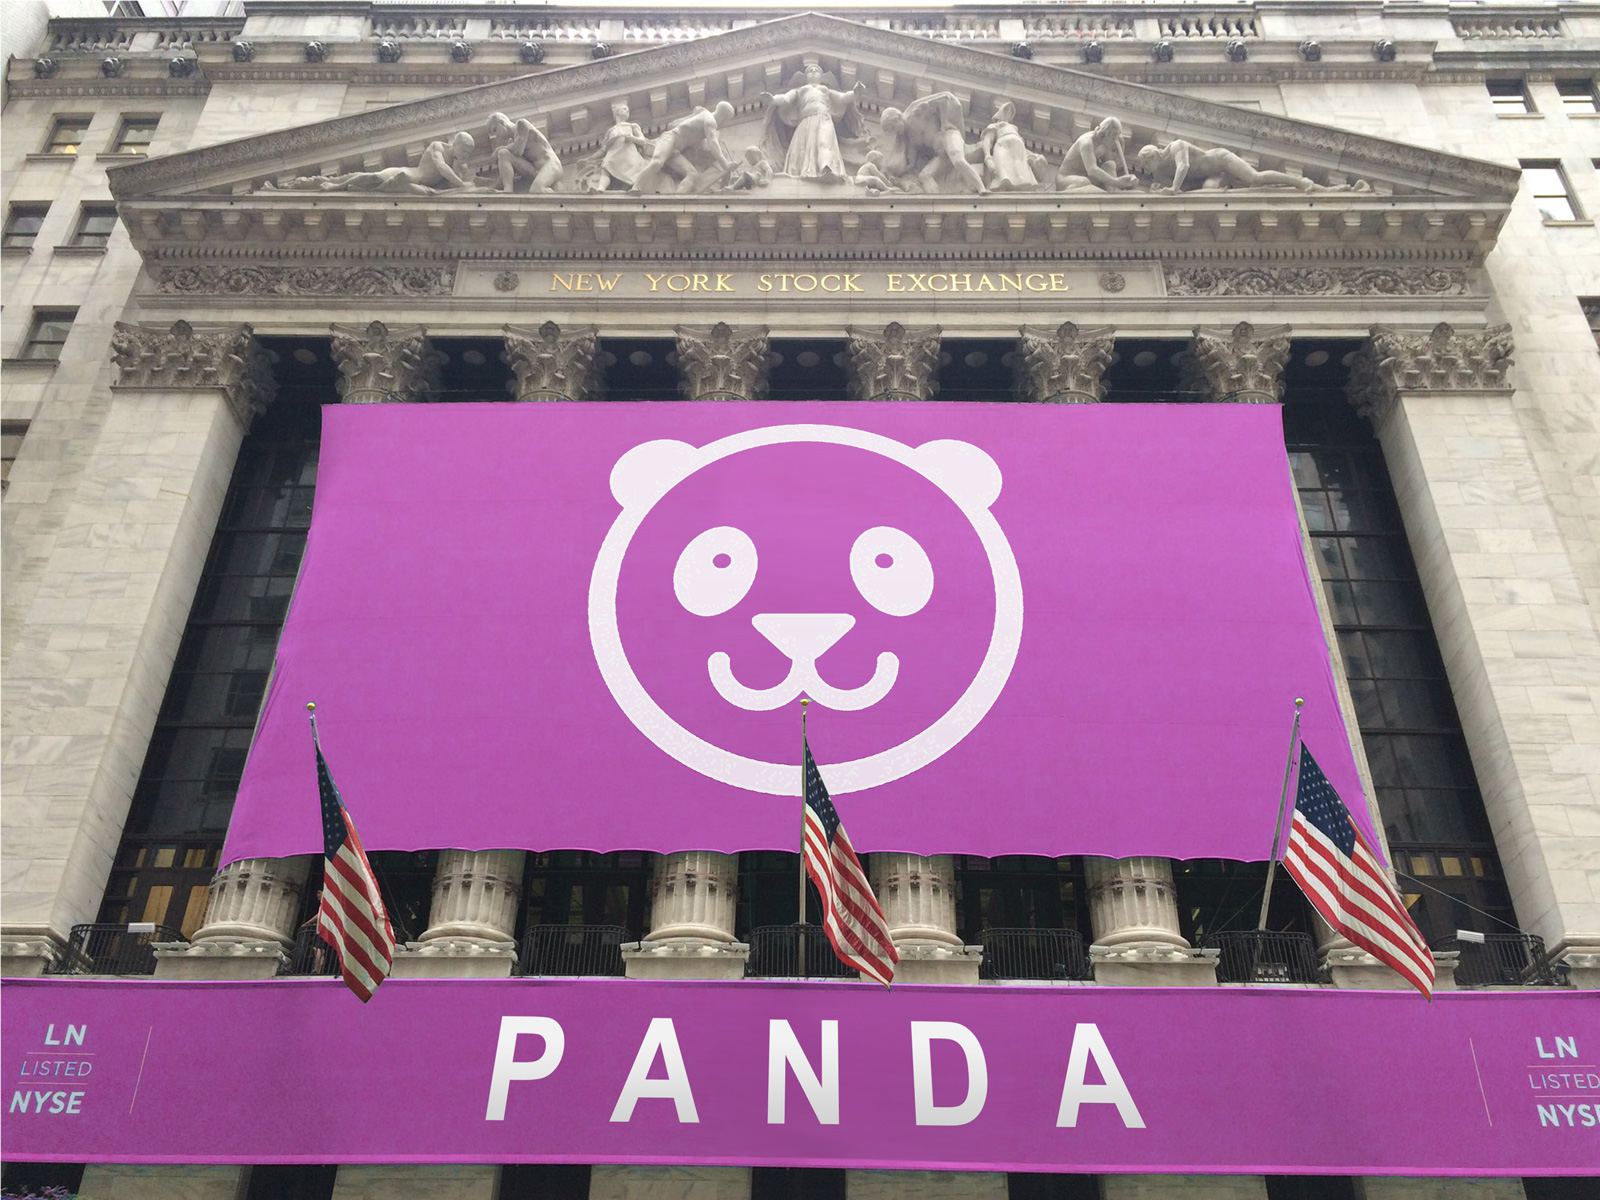 New york stock exchange symbol gallery symbol and sign ideas 05 panda is now a public company on the new york stock exchange it 05 panda buycottarizona